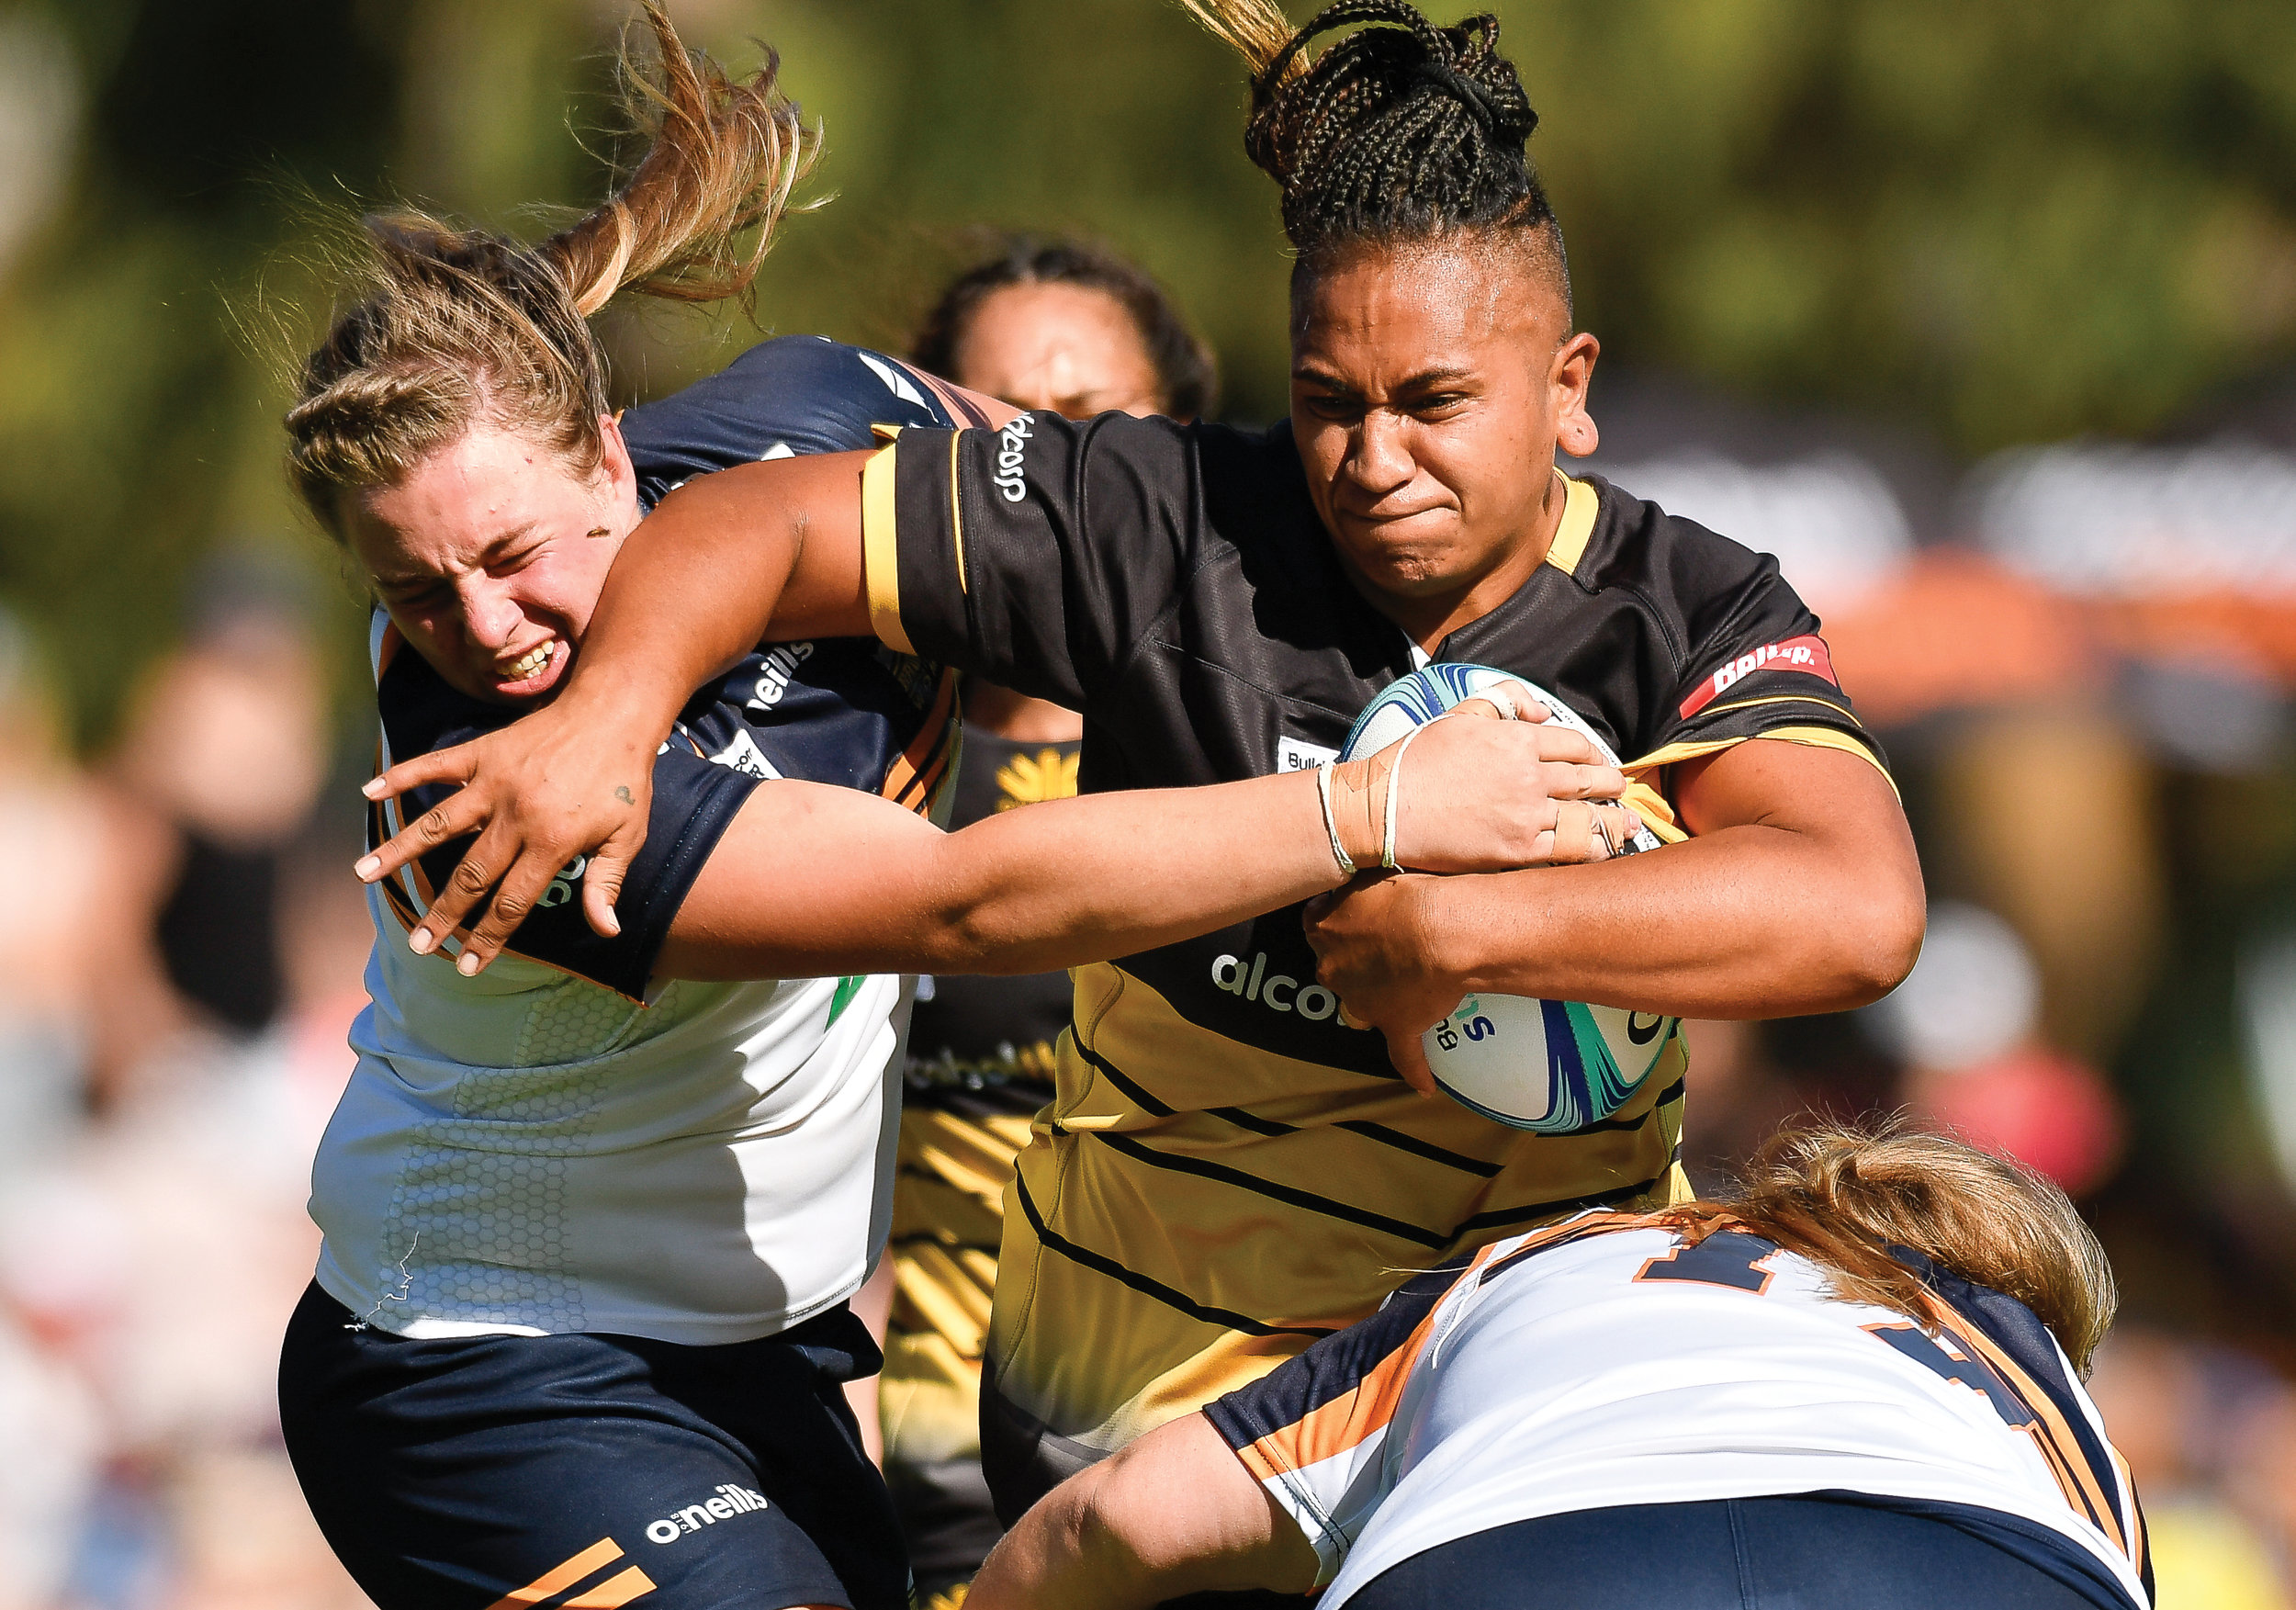 Johan Schmidt  'The Hit-Up' Sera Ah-Sam and Tayla Stanford, Rugby Union